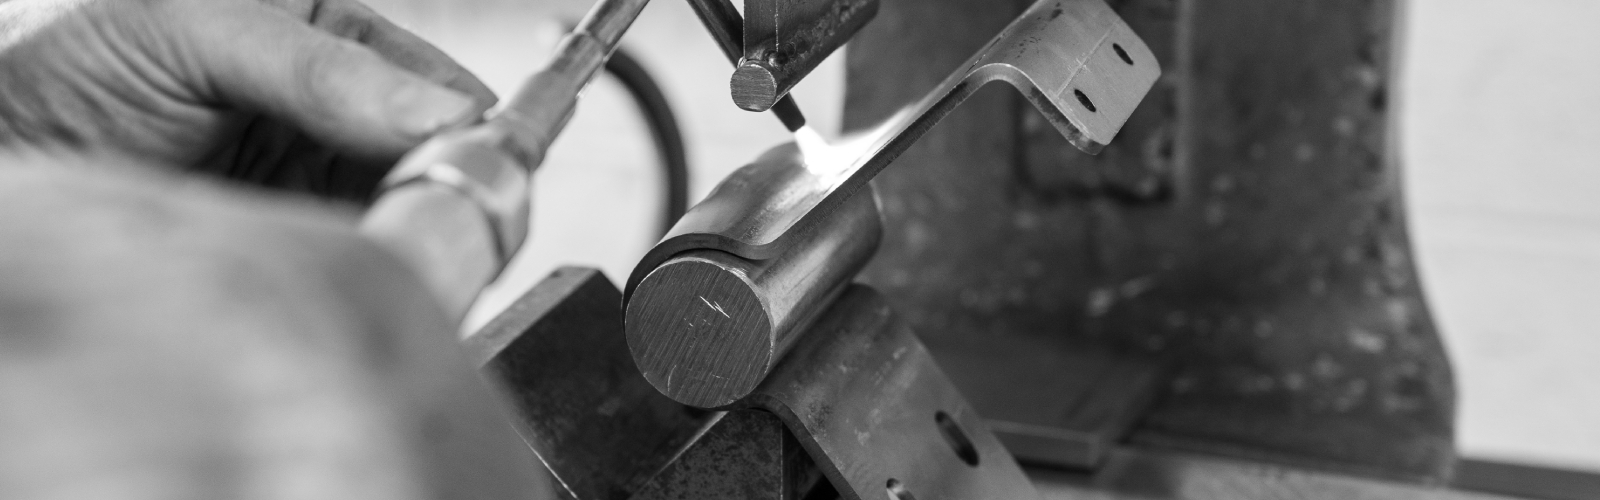 Tool Manufacture for Tube & Pipe Bending UK